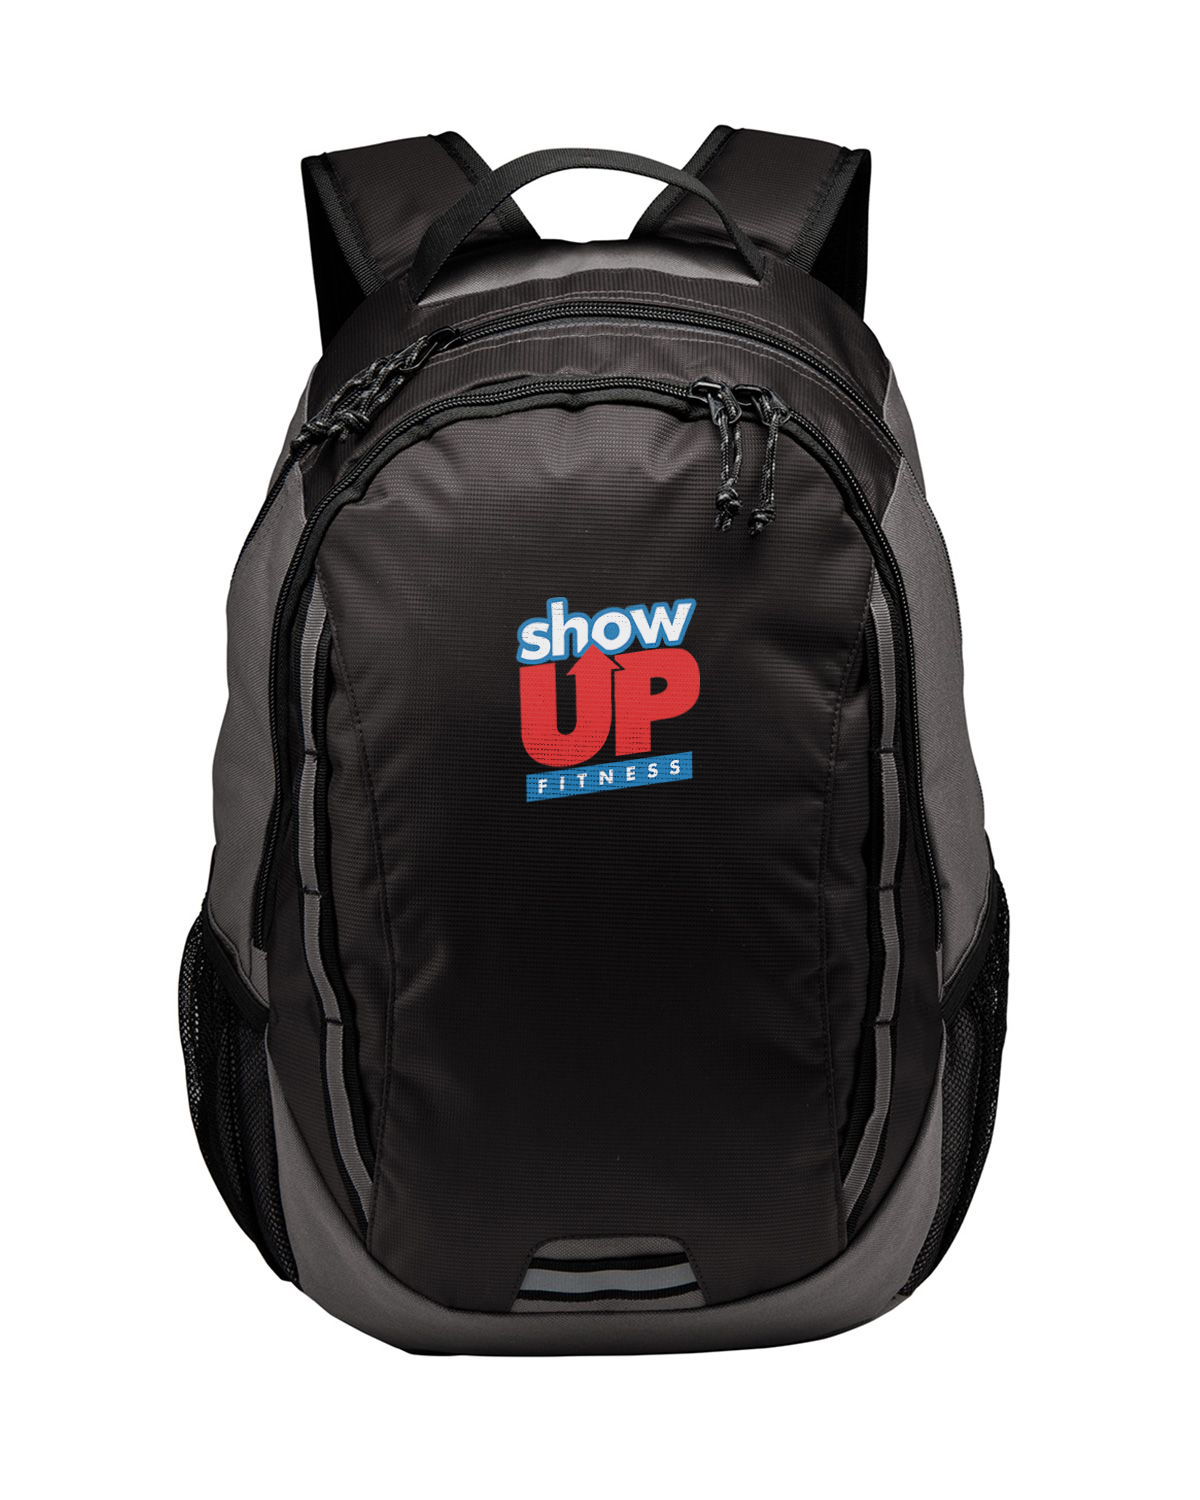 Back pack by Show Up Fitness